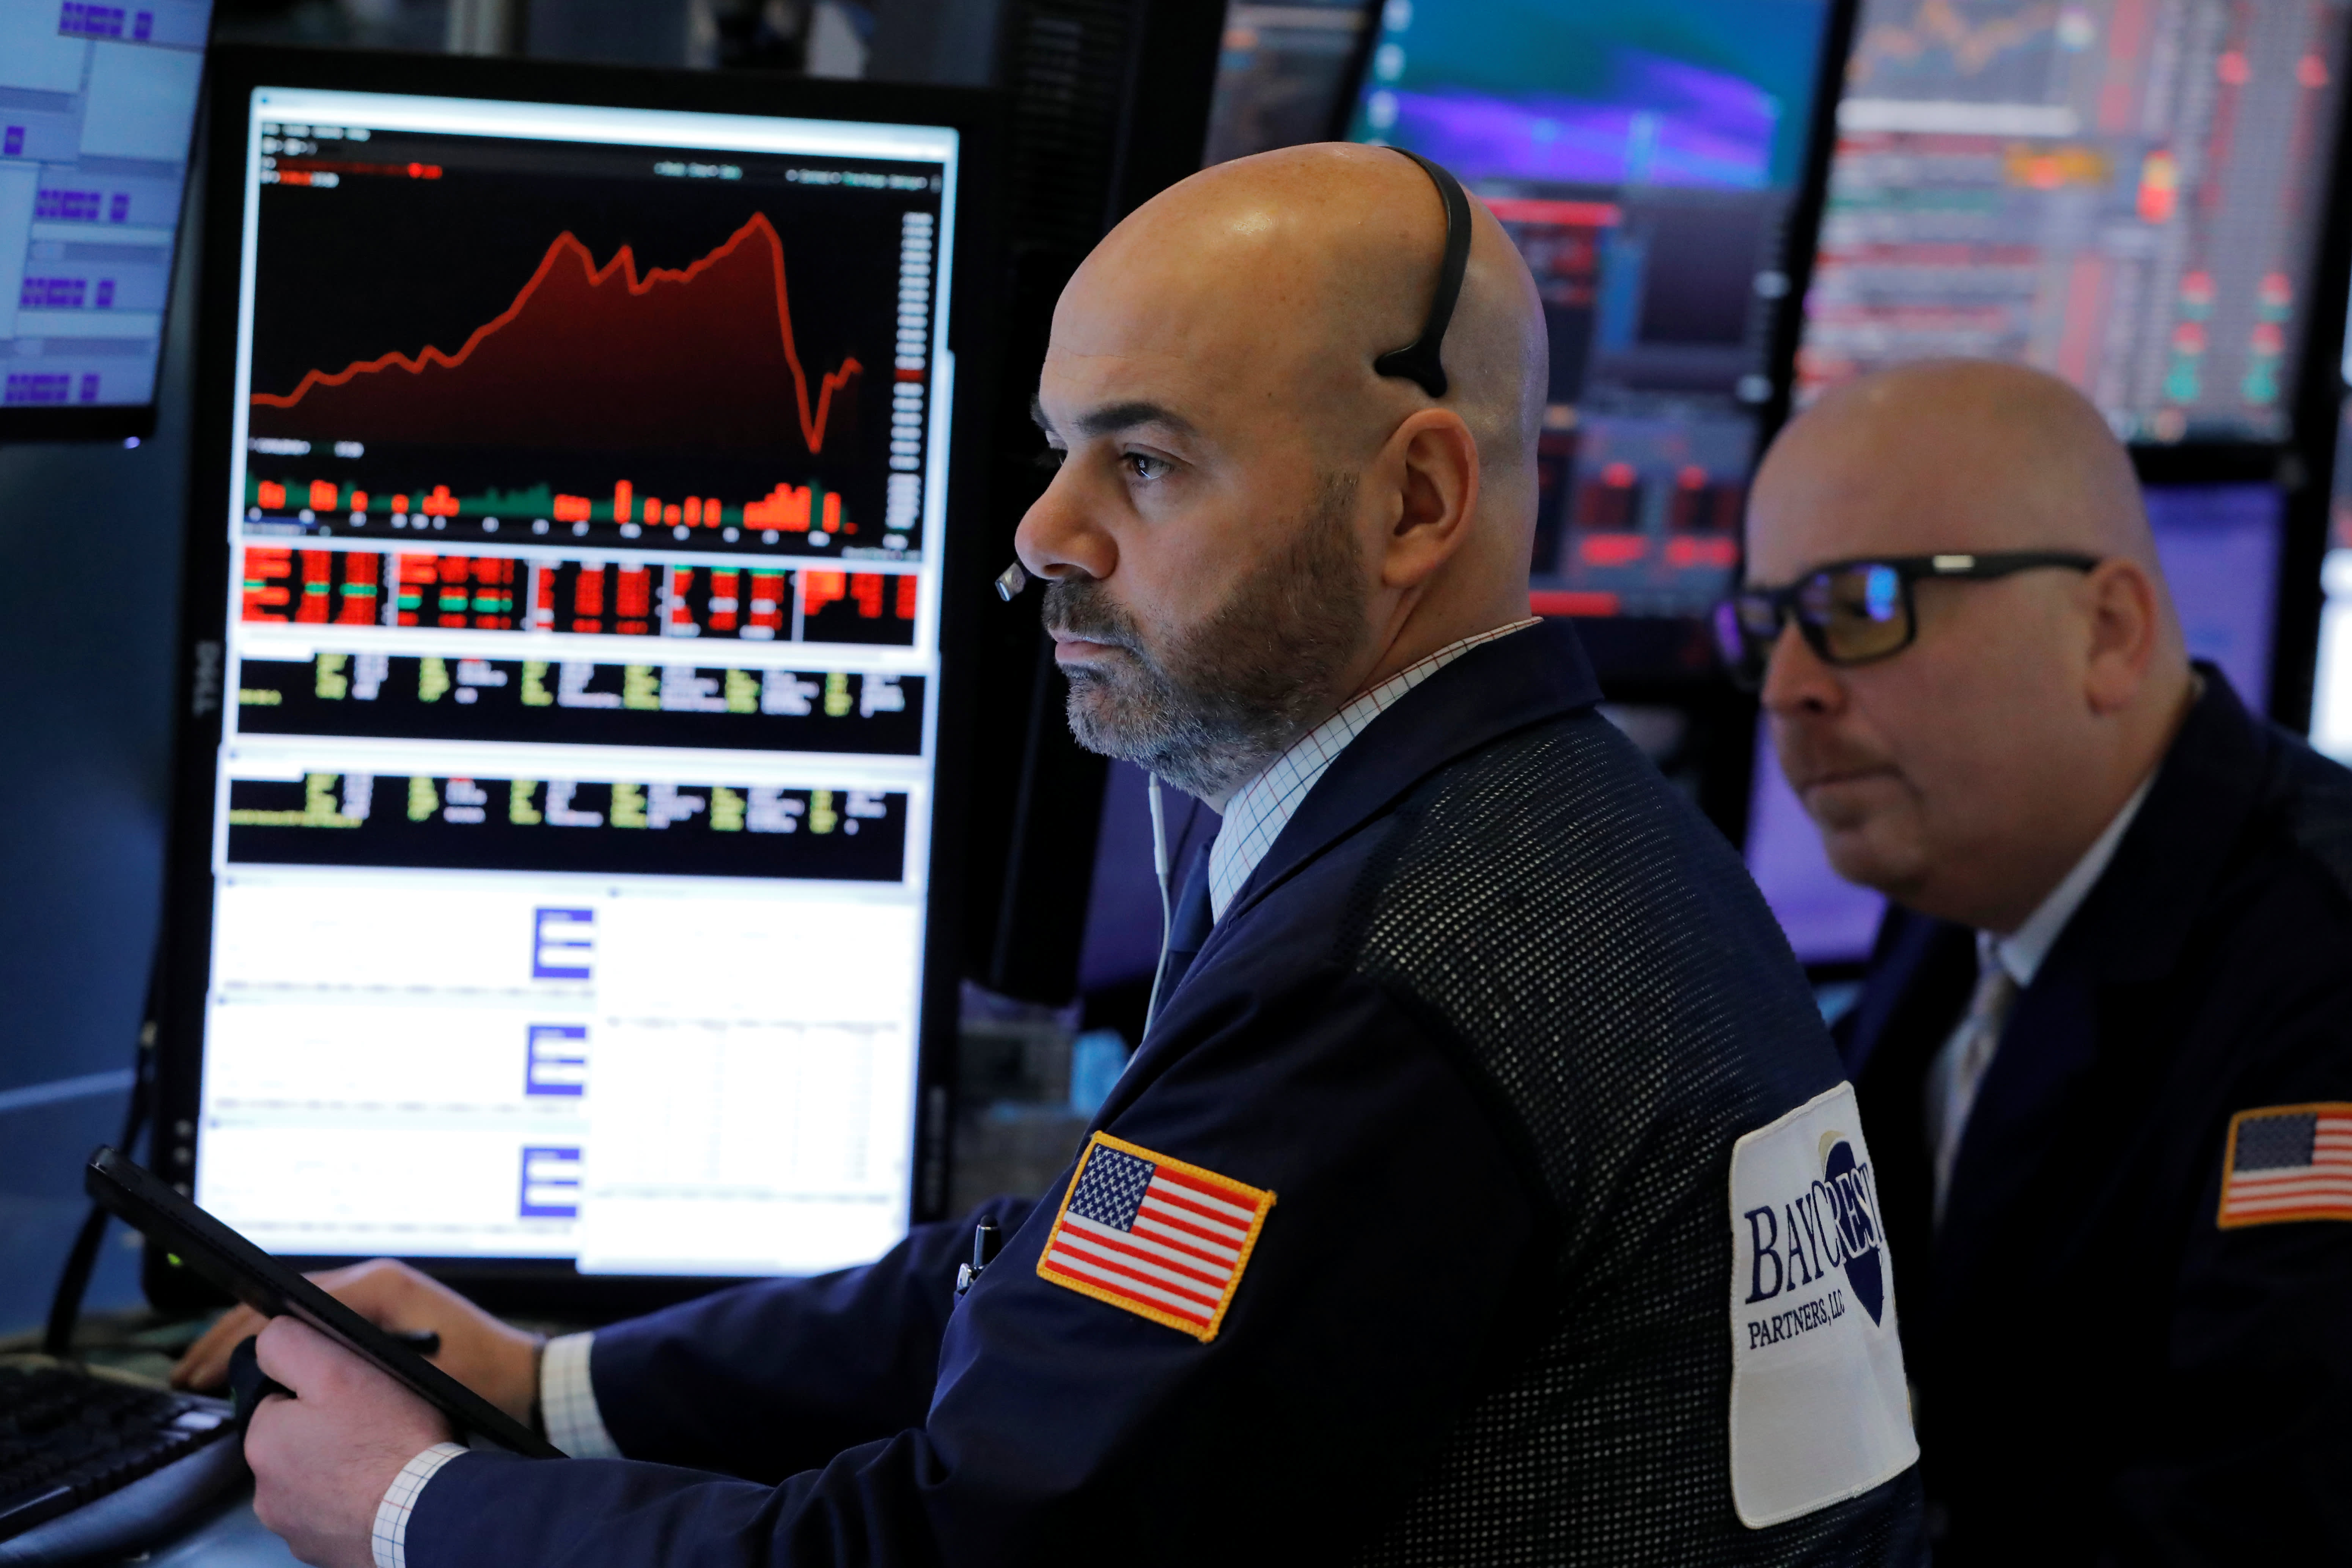 'Big fear' is gone, but the market is not 'ready to roar'